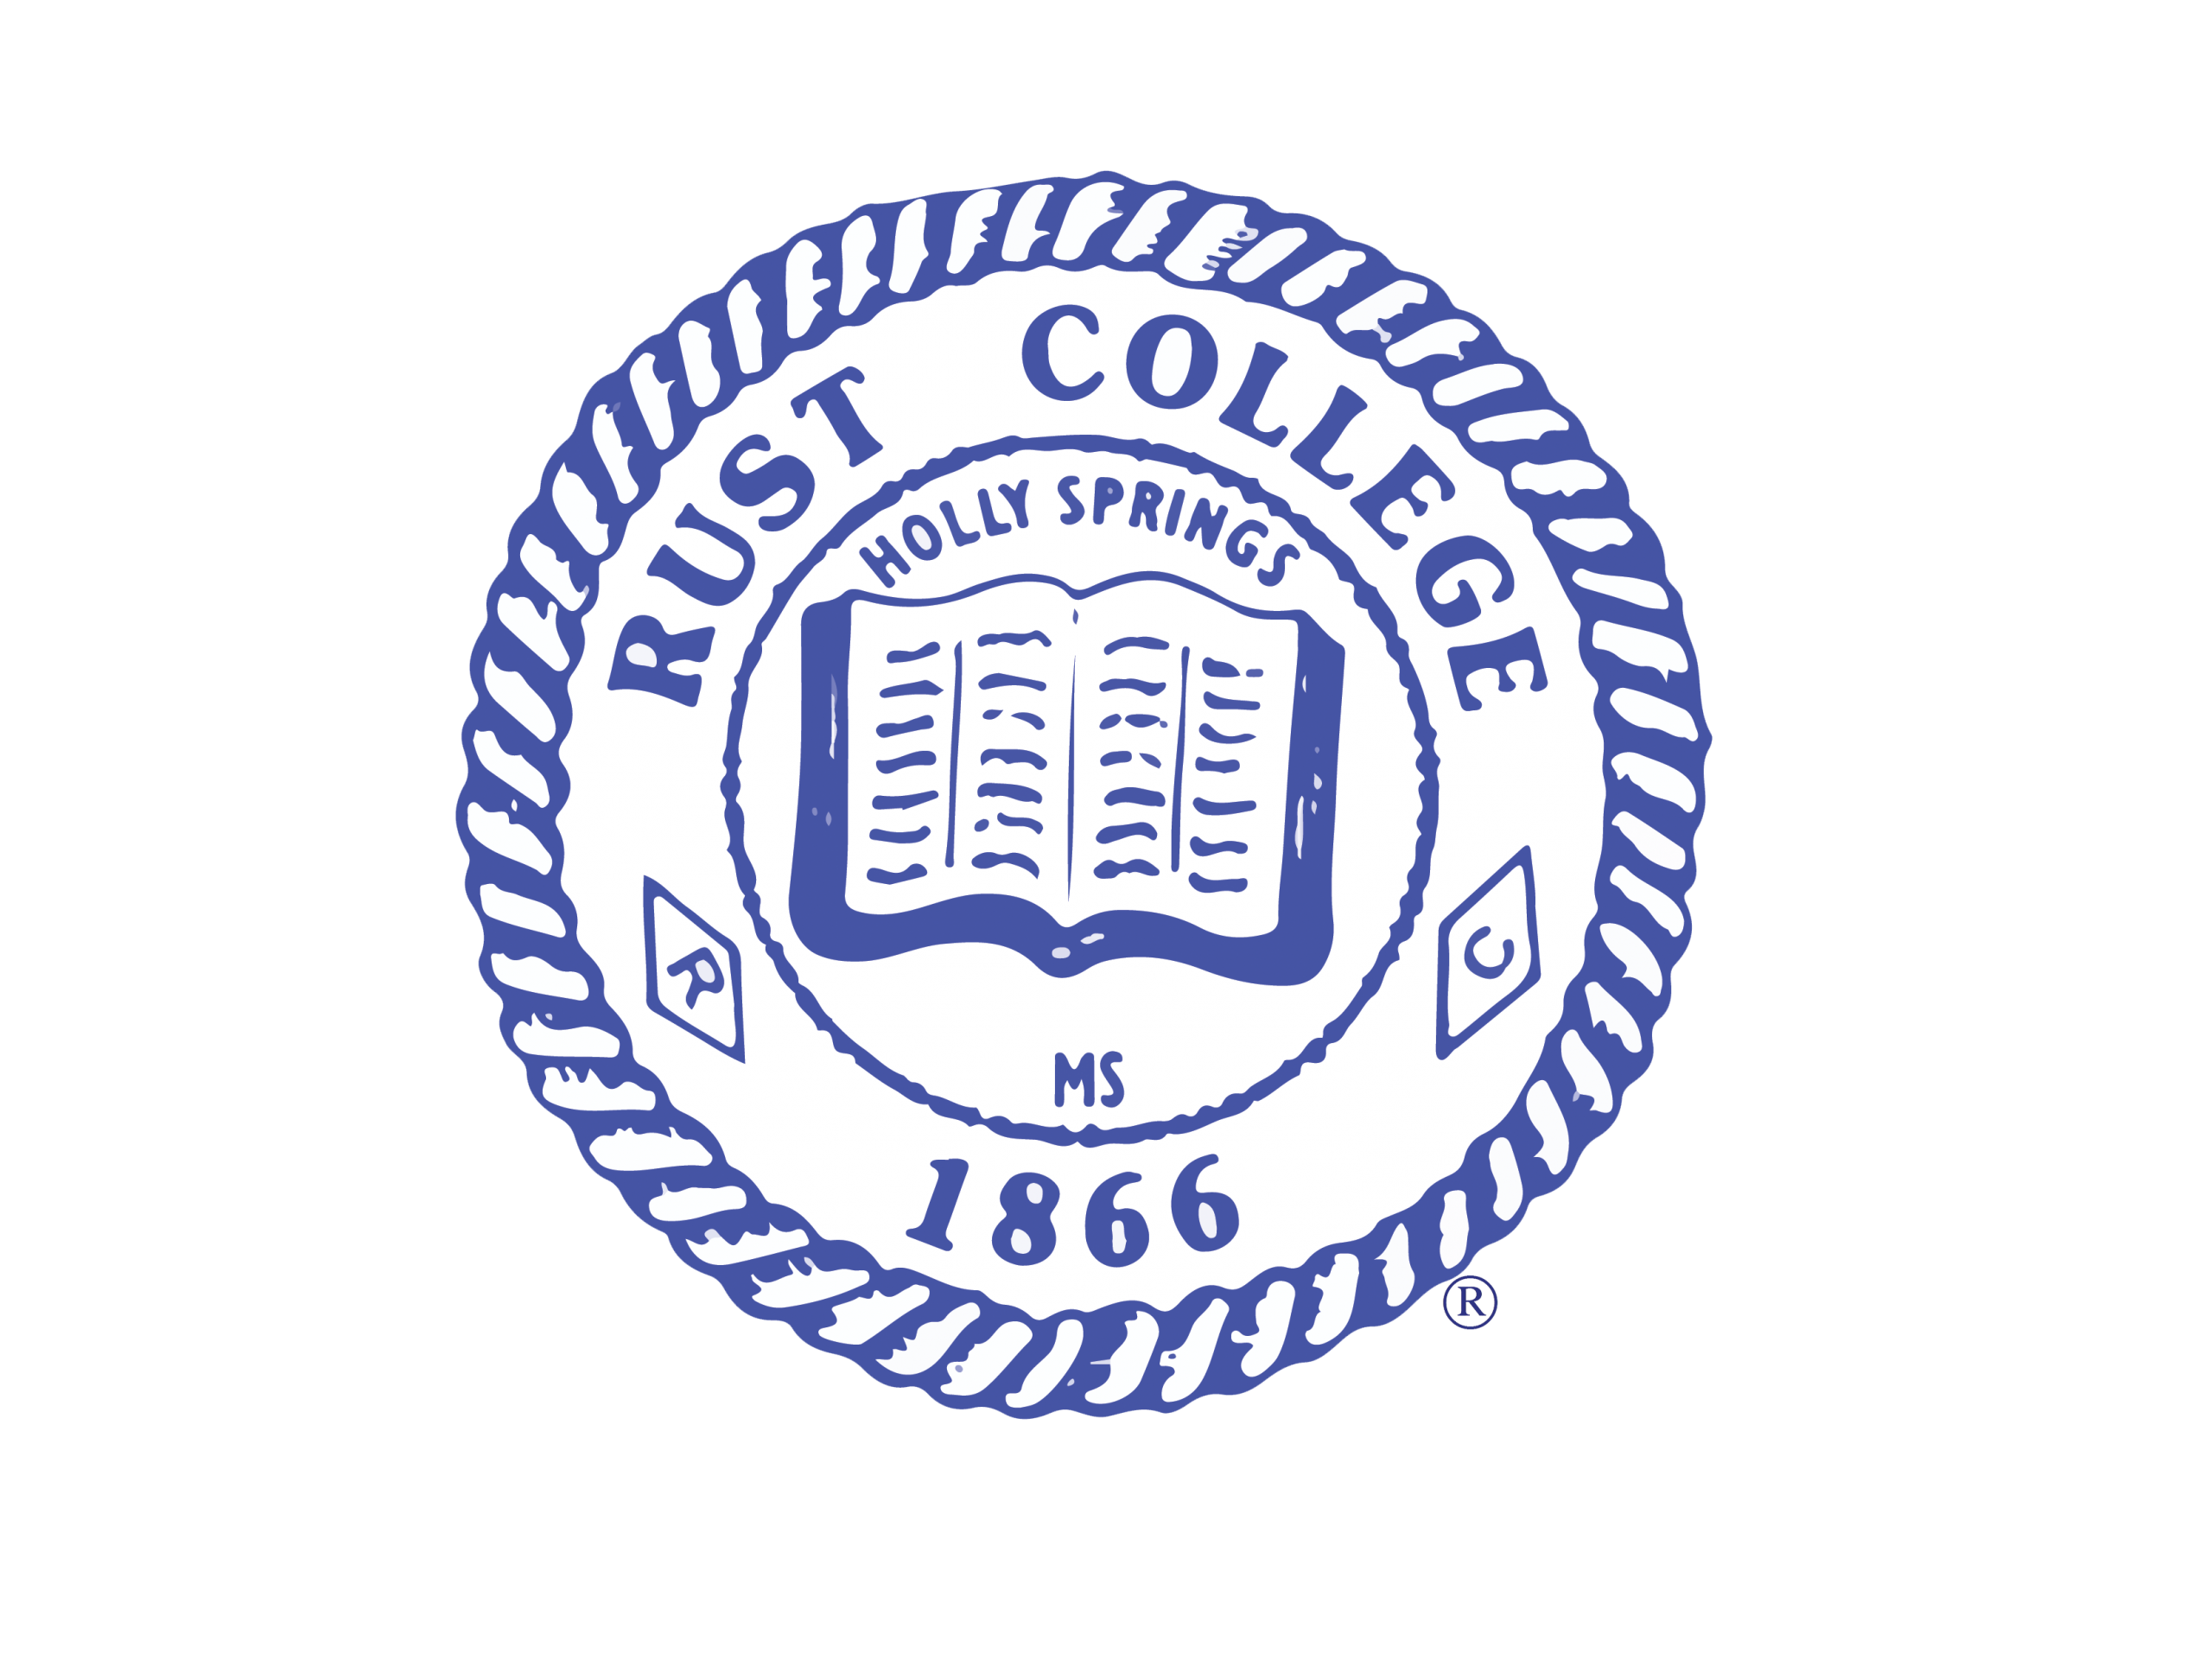 Rust College | Where Tomorrows Leaders are Students Today